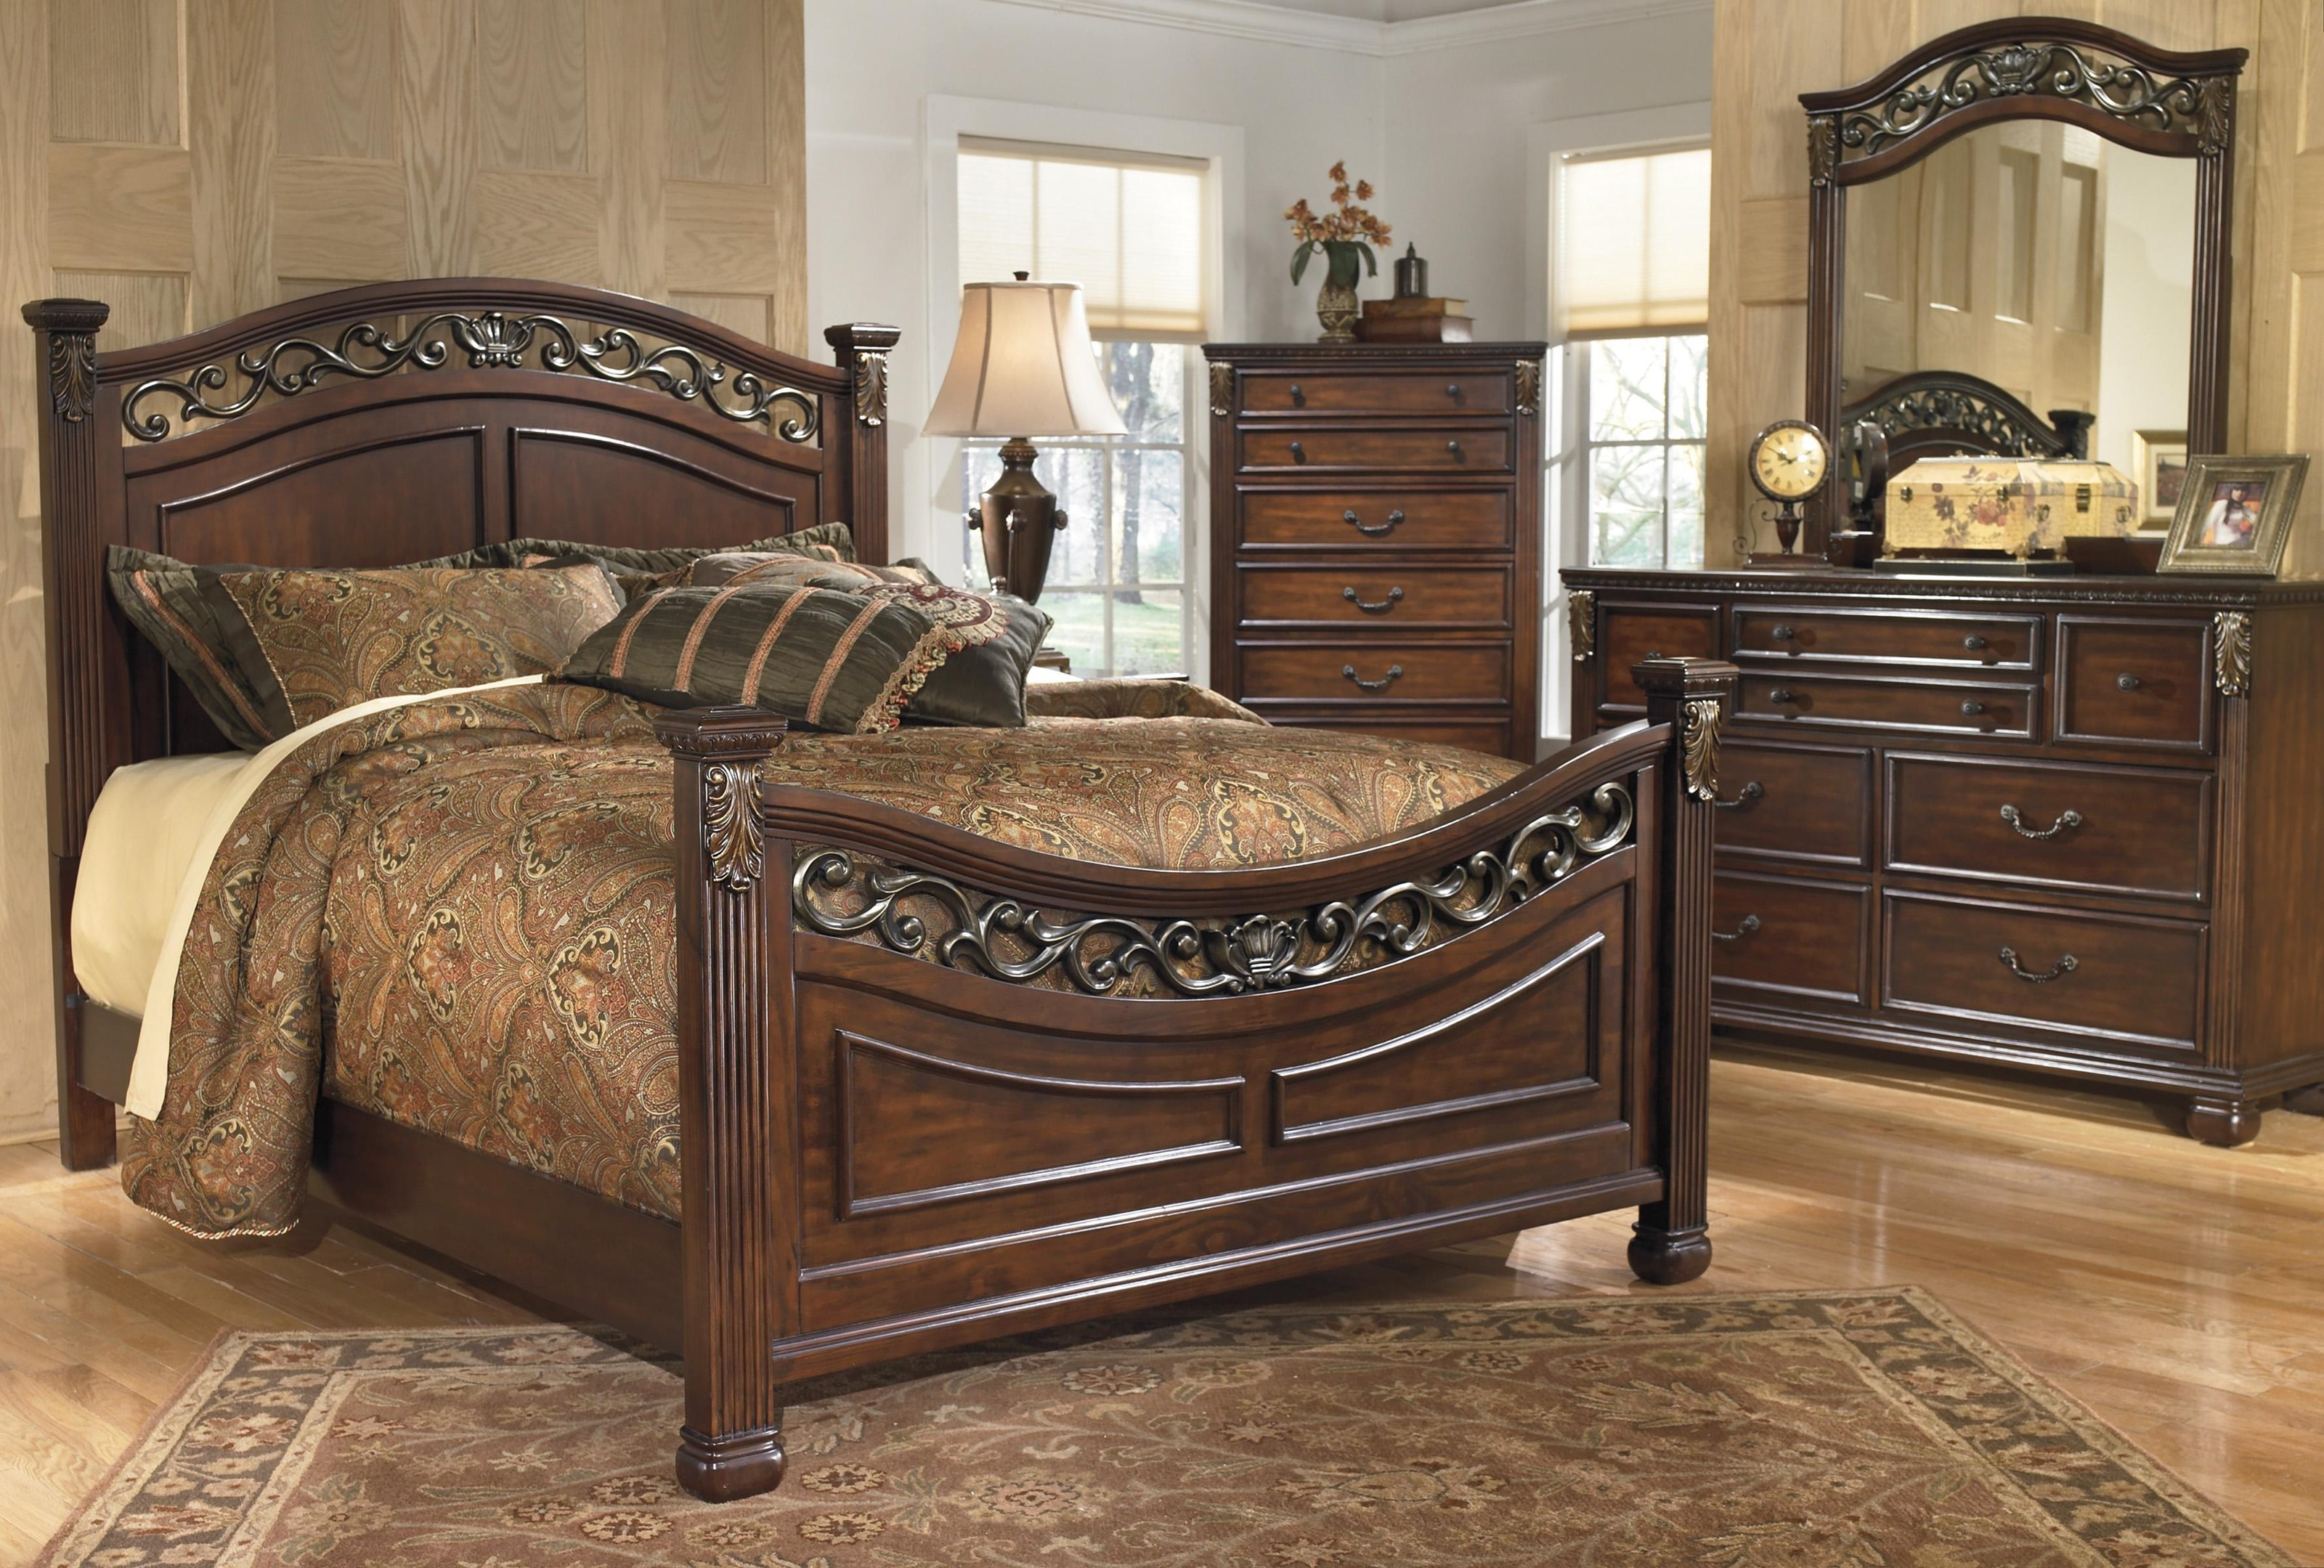 Signature Design By Ashley Leahlyn Queen 5 Piece Bedroom Group Royal Furniture Bedroom Groups